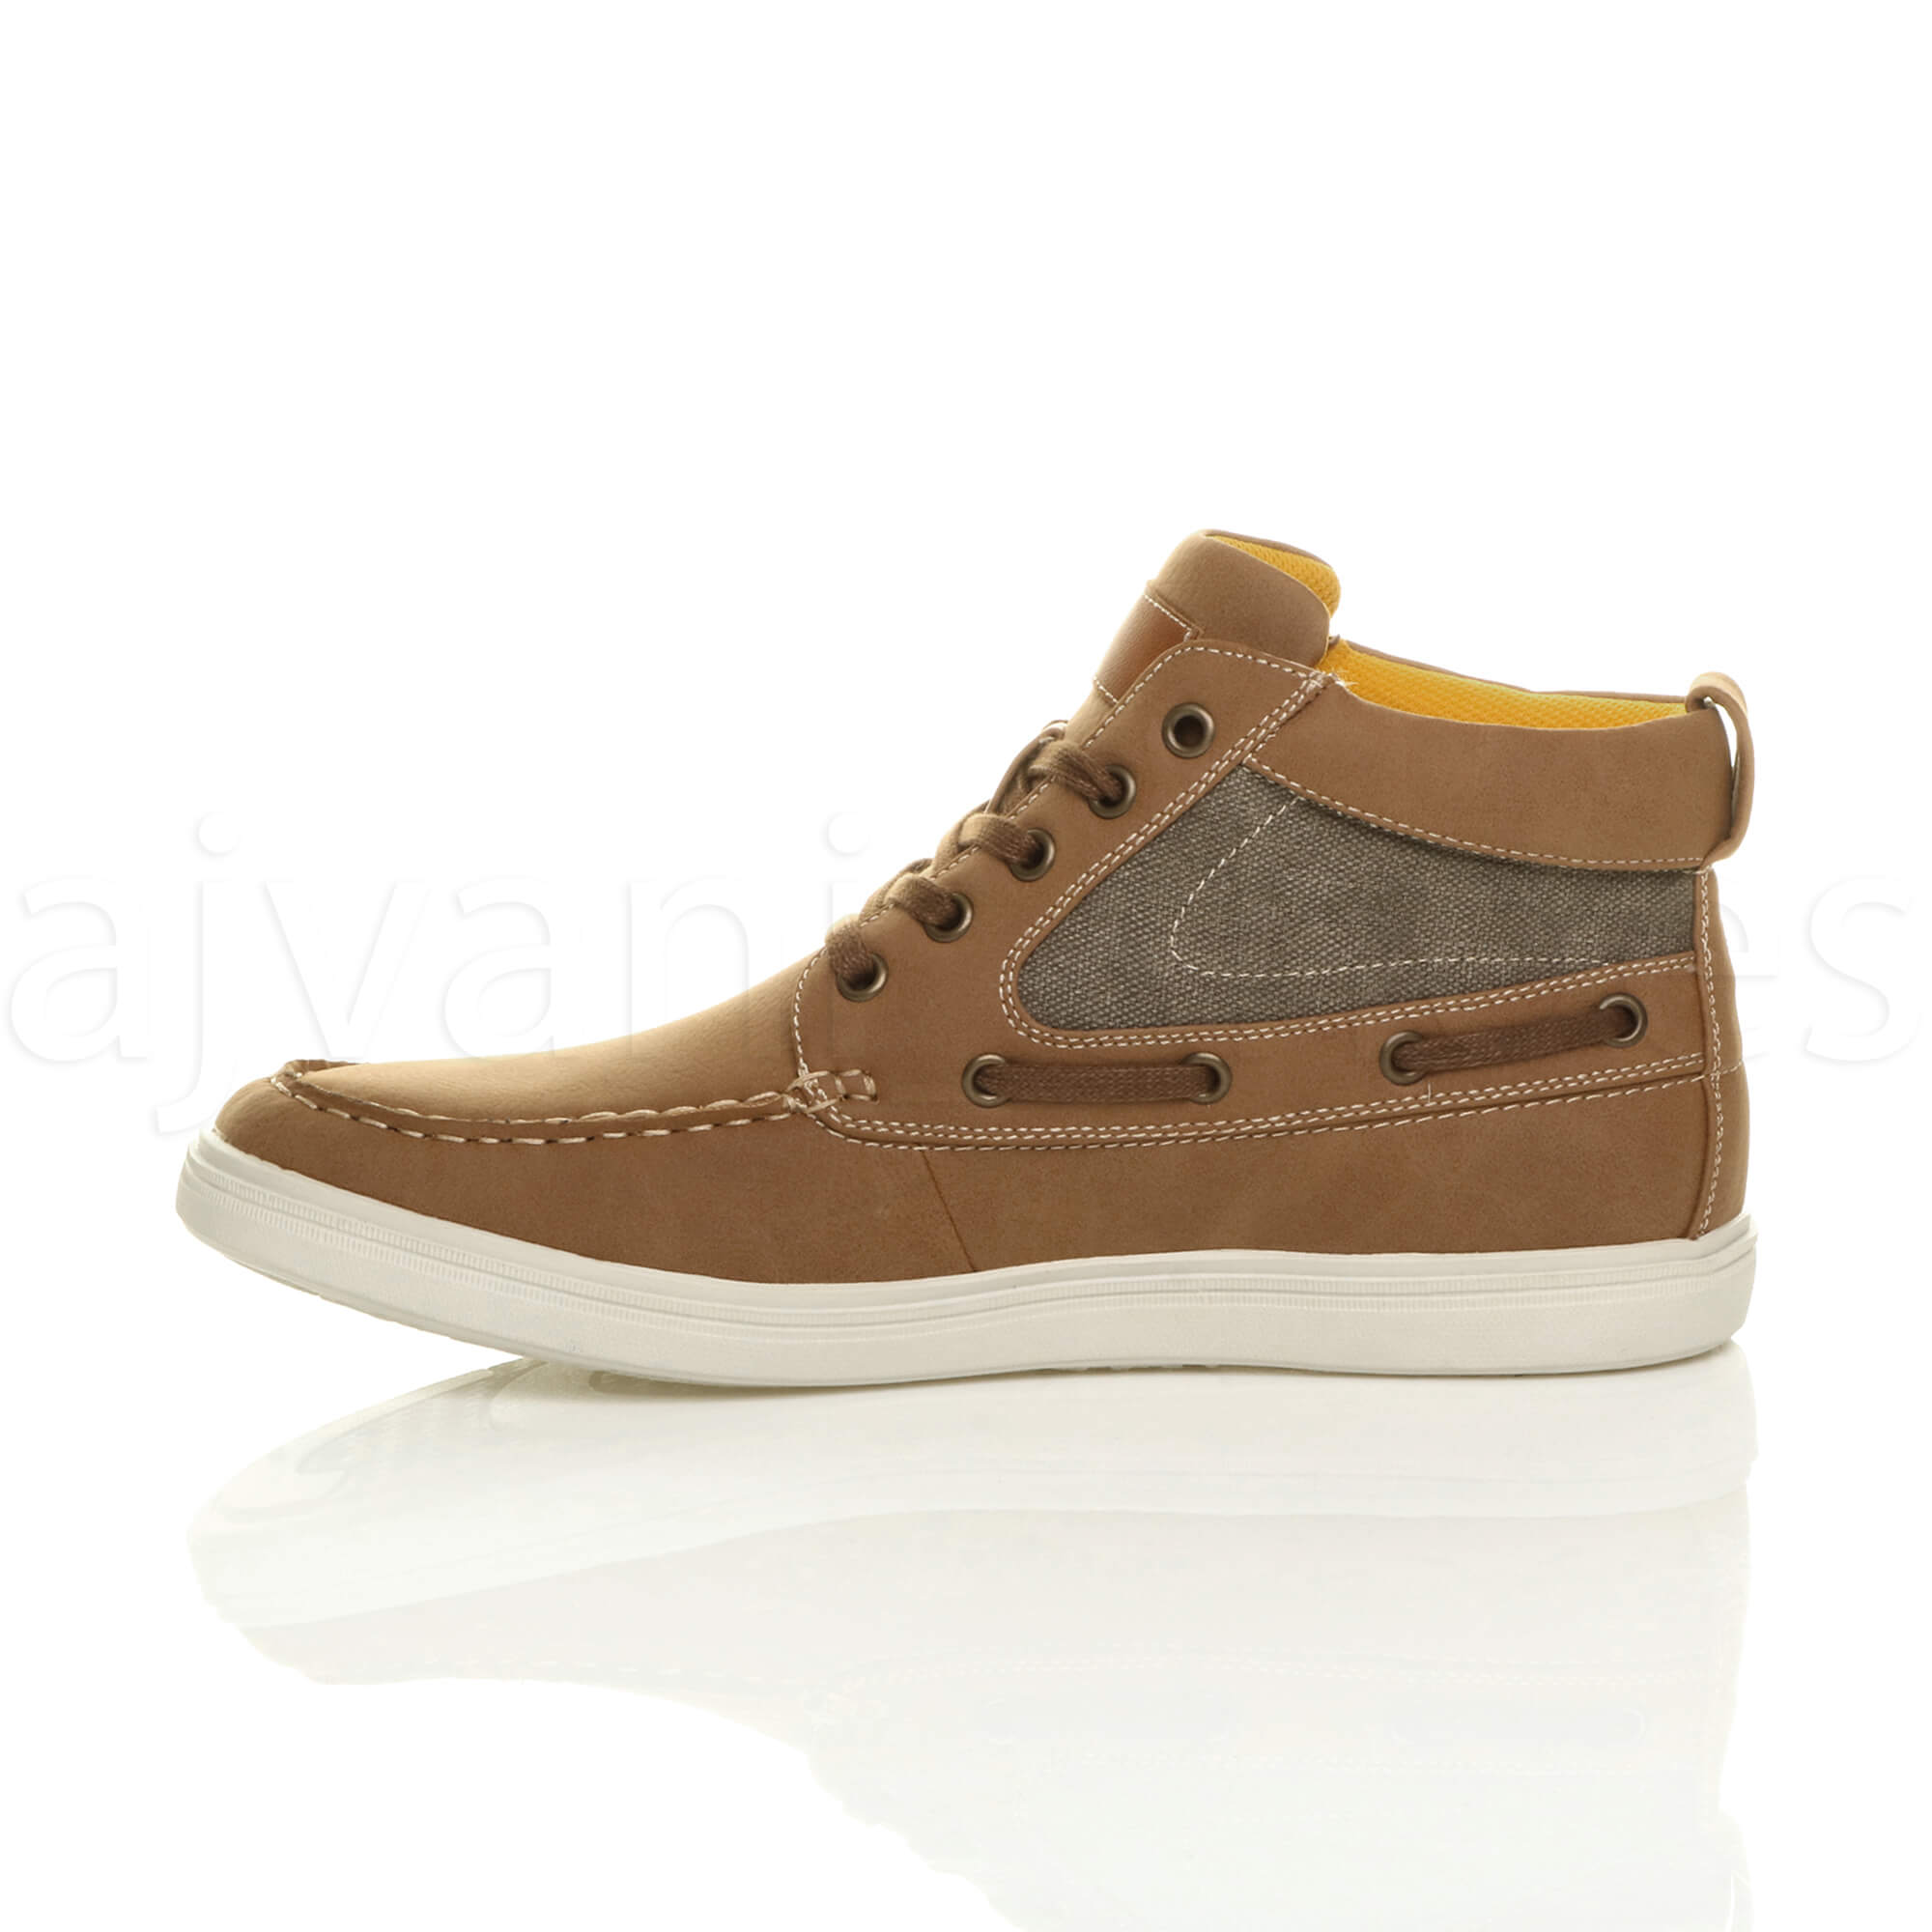 MENS-FLAT-LACE-UP-CASUAL-BOAT-CONTRAST-HI-TOP-TRAINERS-ANKLE-BOOTS-PUMPS-SIZE thumbnail 11